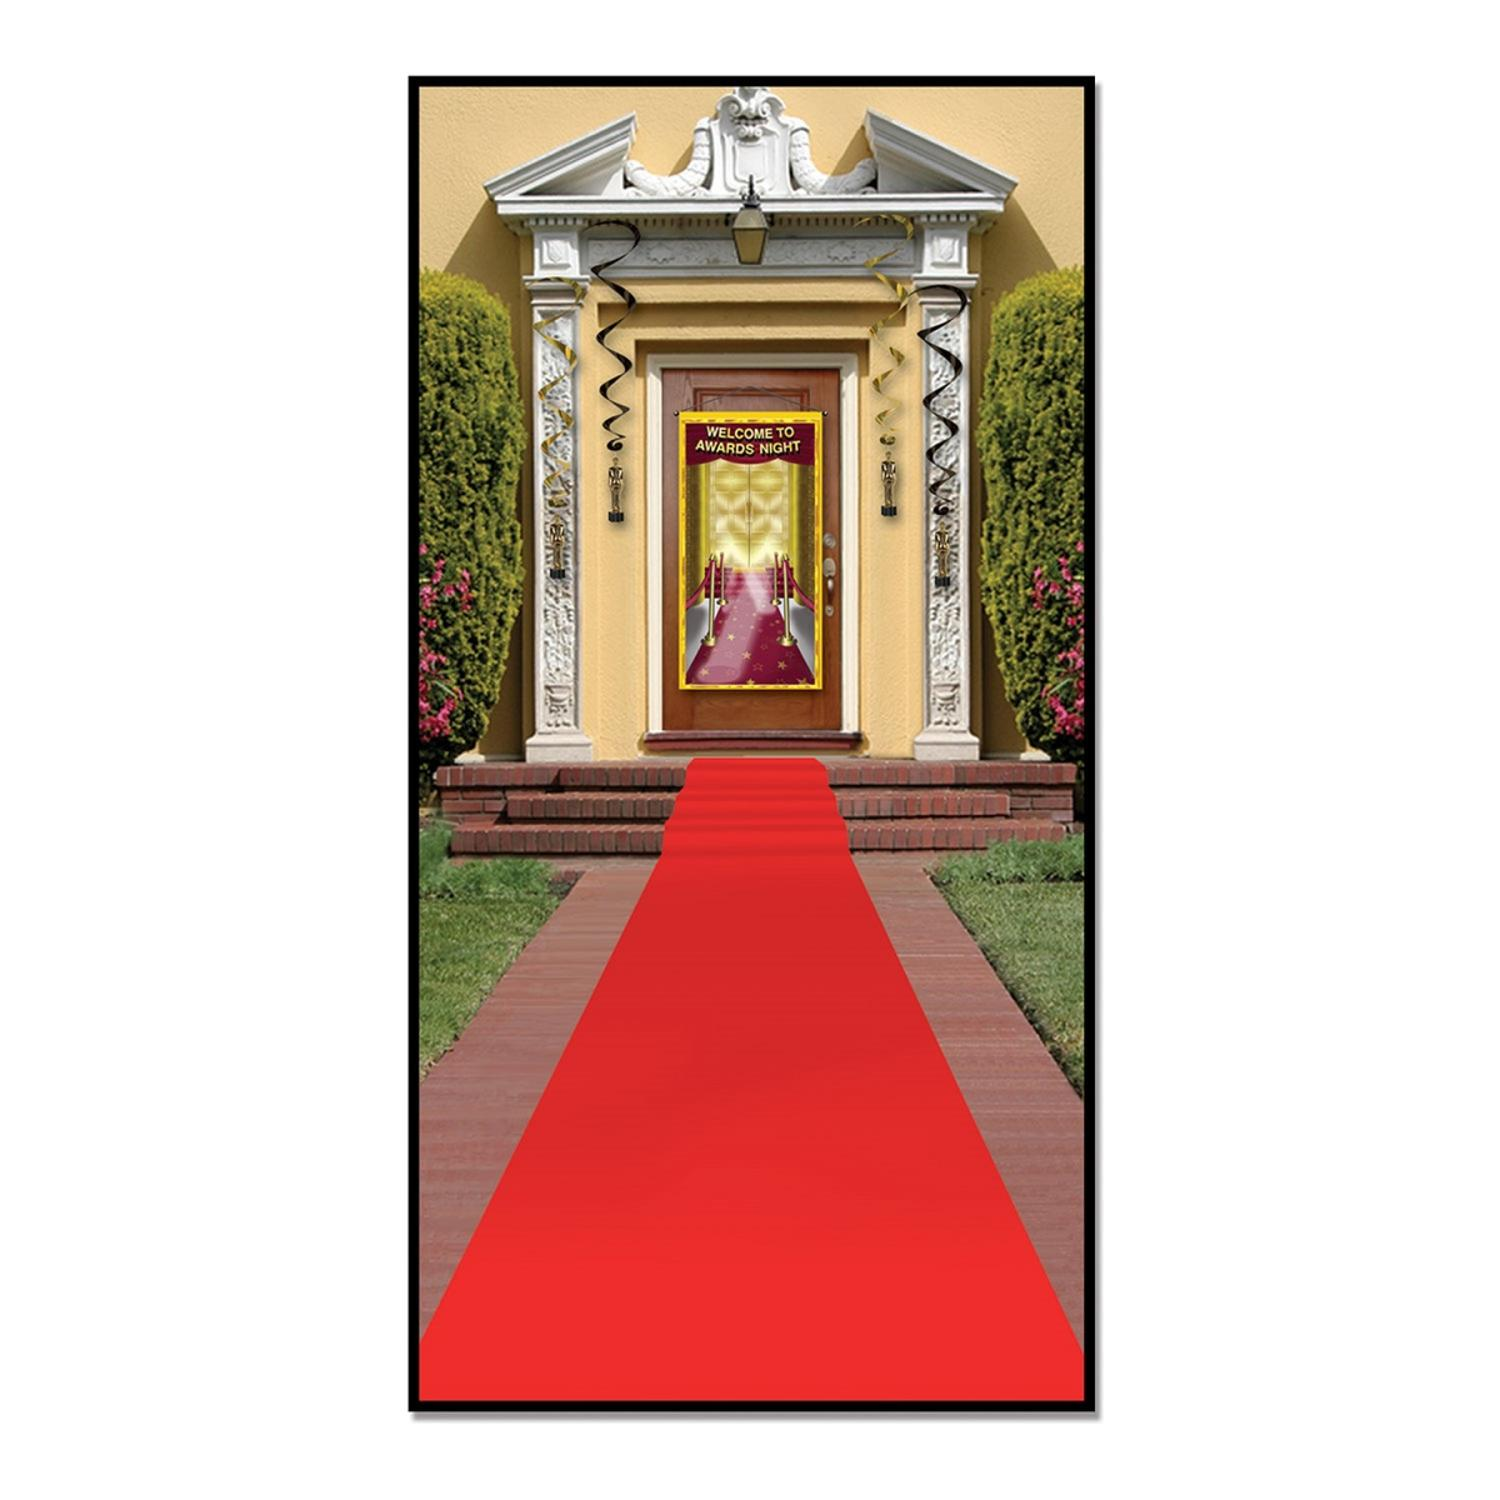 Pack of 6 Awards Night Themed Red Carpet Runner Party Decorations 15'